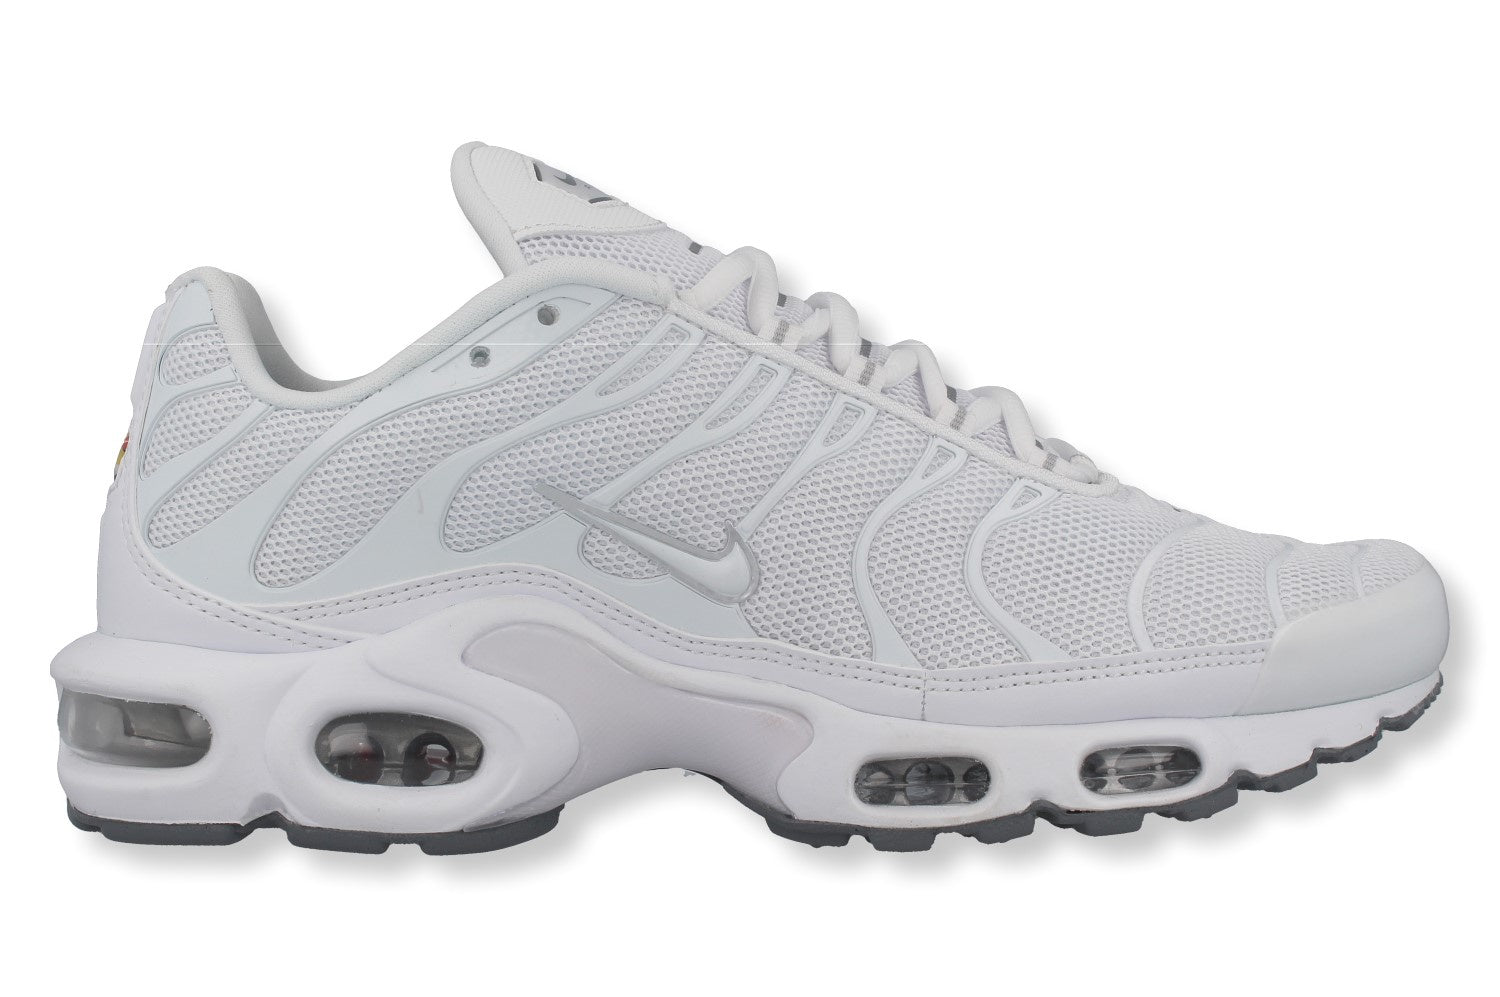 Nike Air Max Plus TN – Schrittmacher Sneakerhandlung